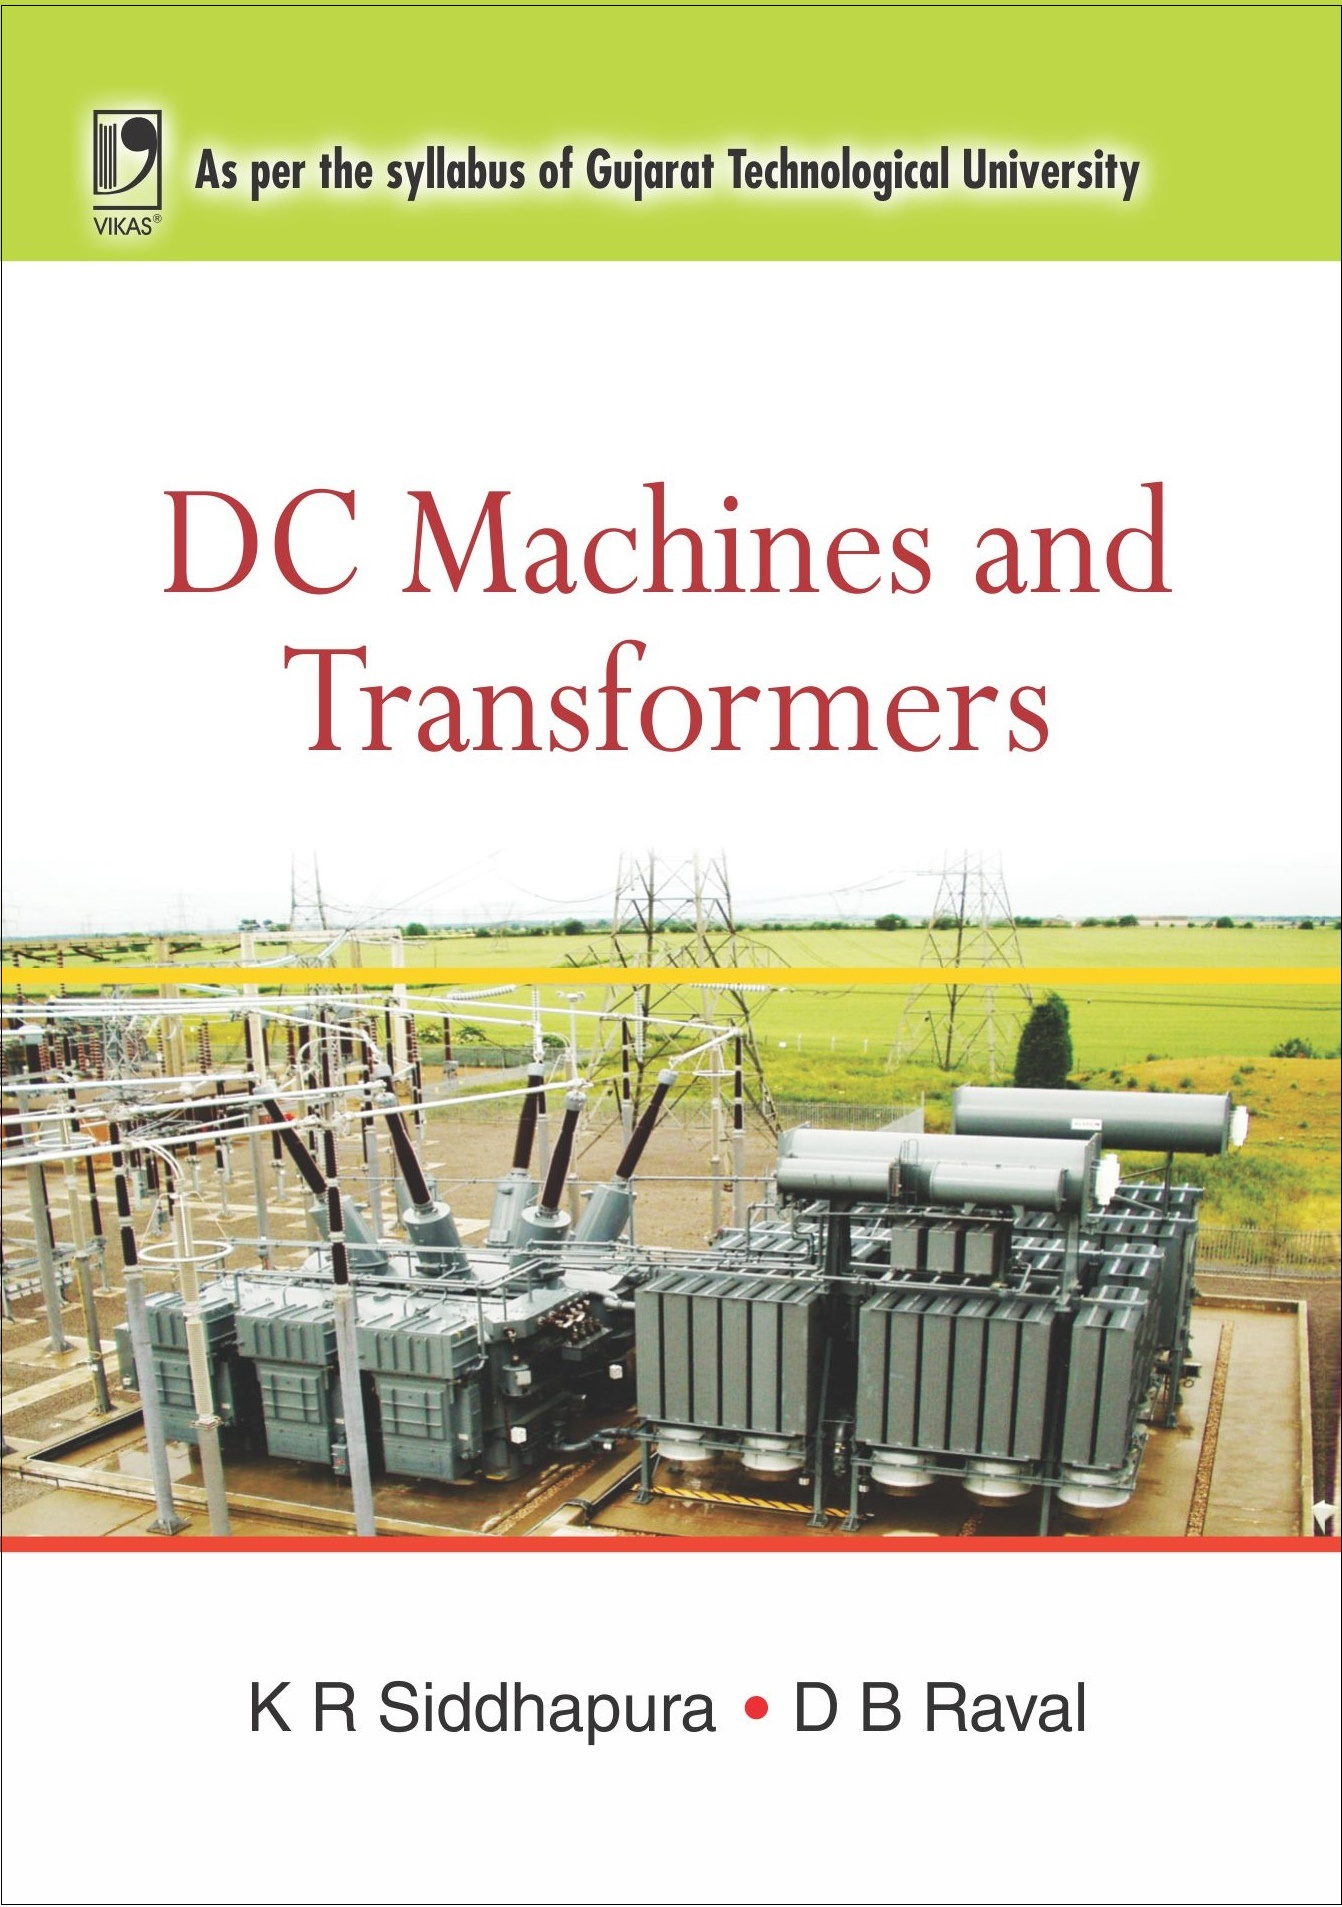 DC MACHINES AND TRANSFORMERS: (FOR GUJARAT TECHNOLOGICAL UNIVERSITY) by  K R Siddhapura